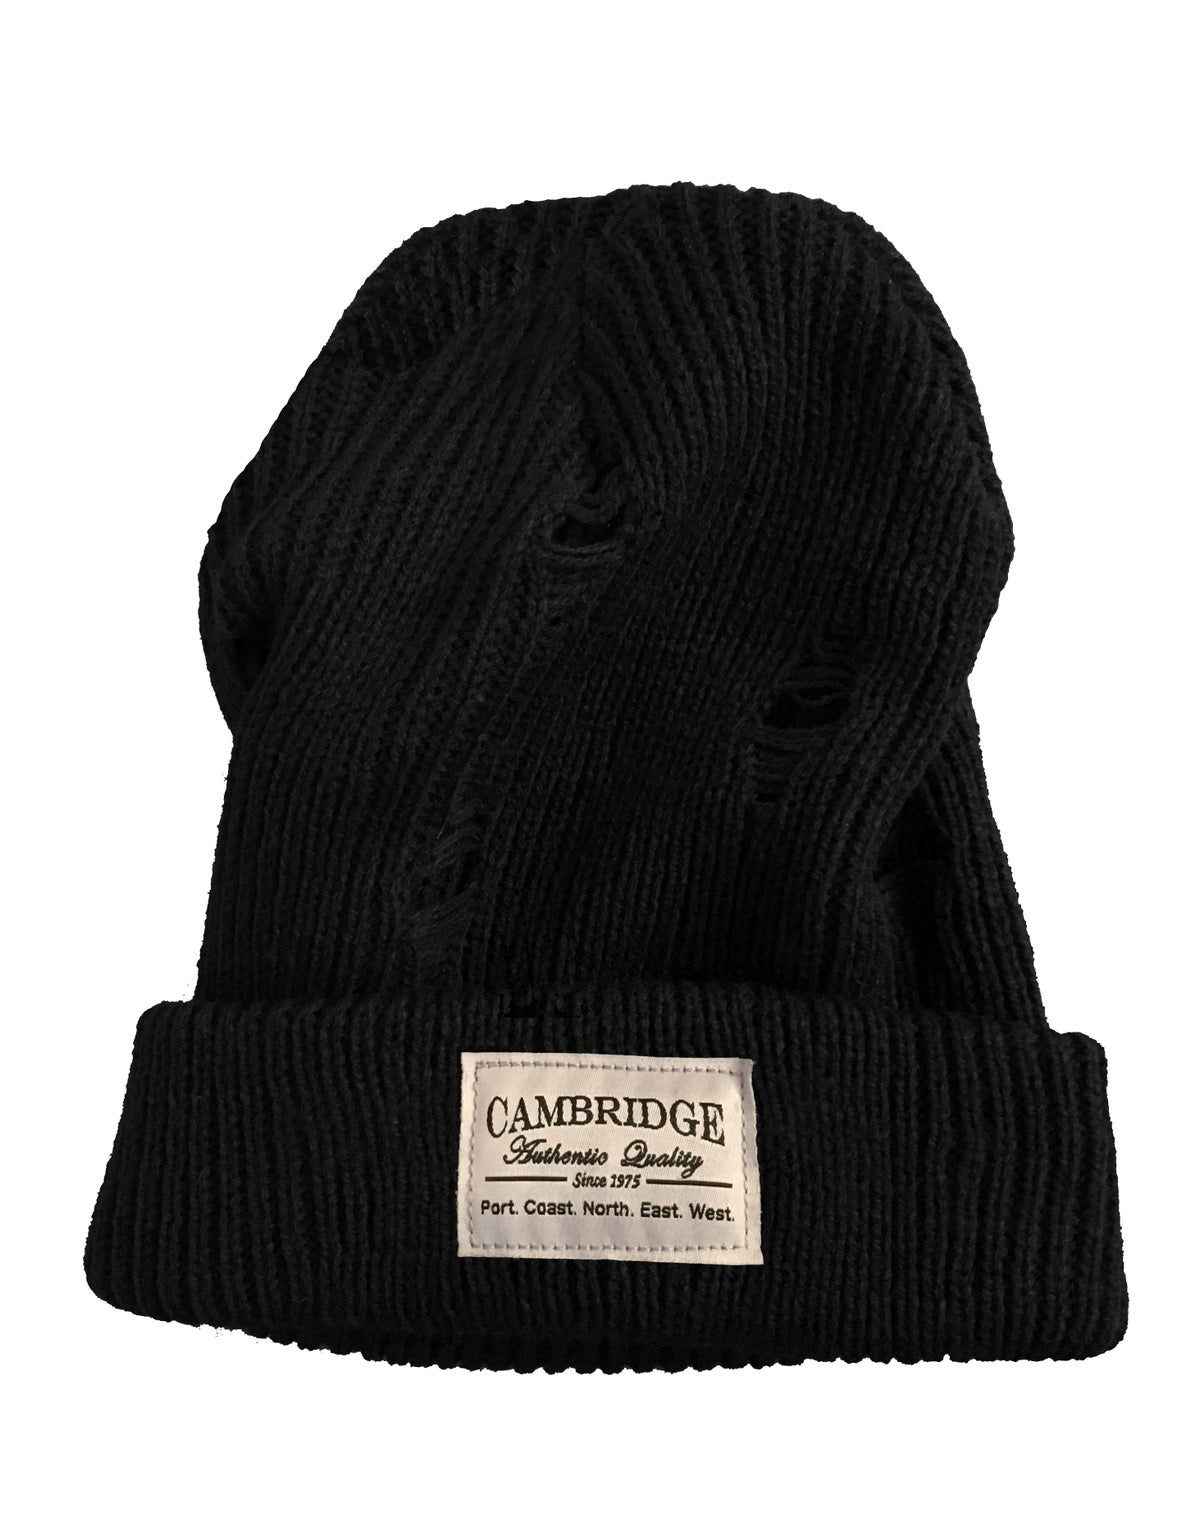 Image of NEW RELEASE Deconstructed Skully with Cambridge Patch